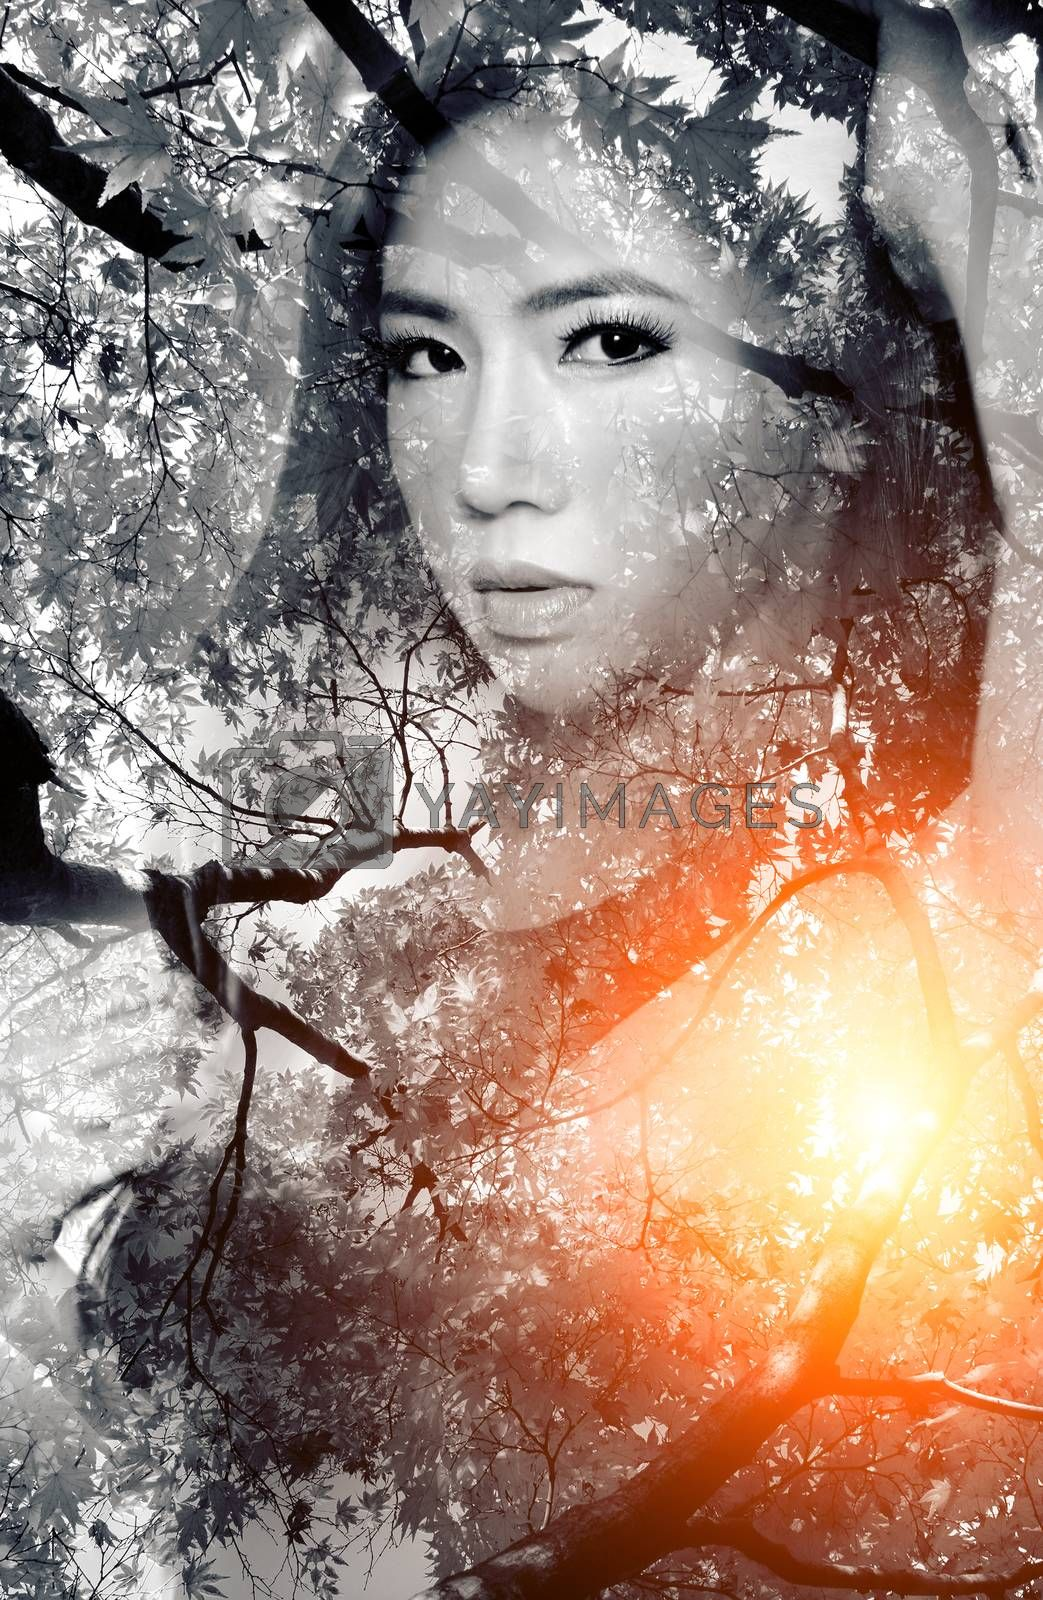 Double exposure portrait of Beautiful girl combined with photograph of nature.